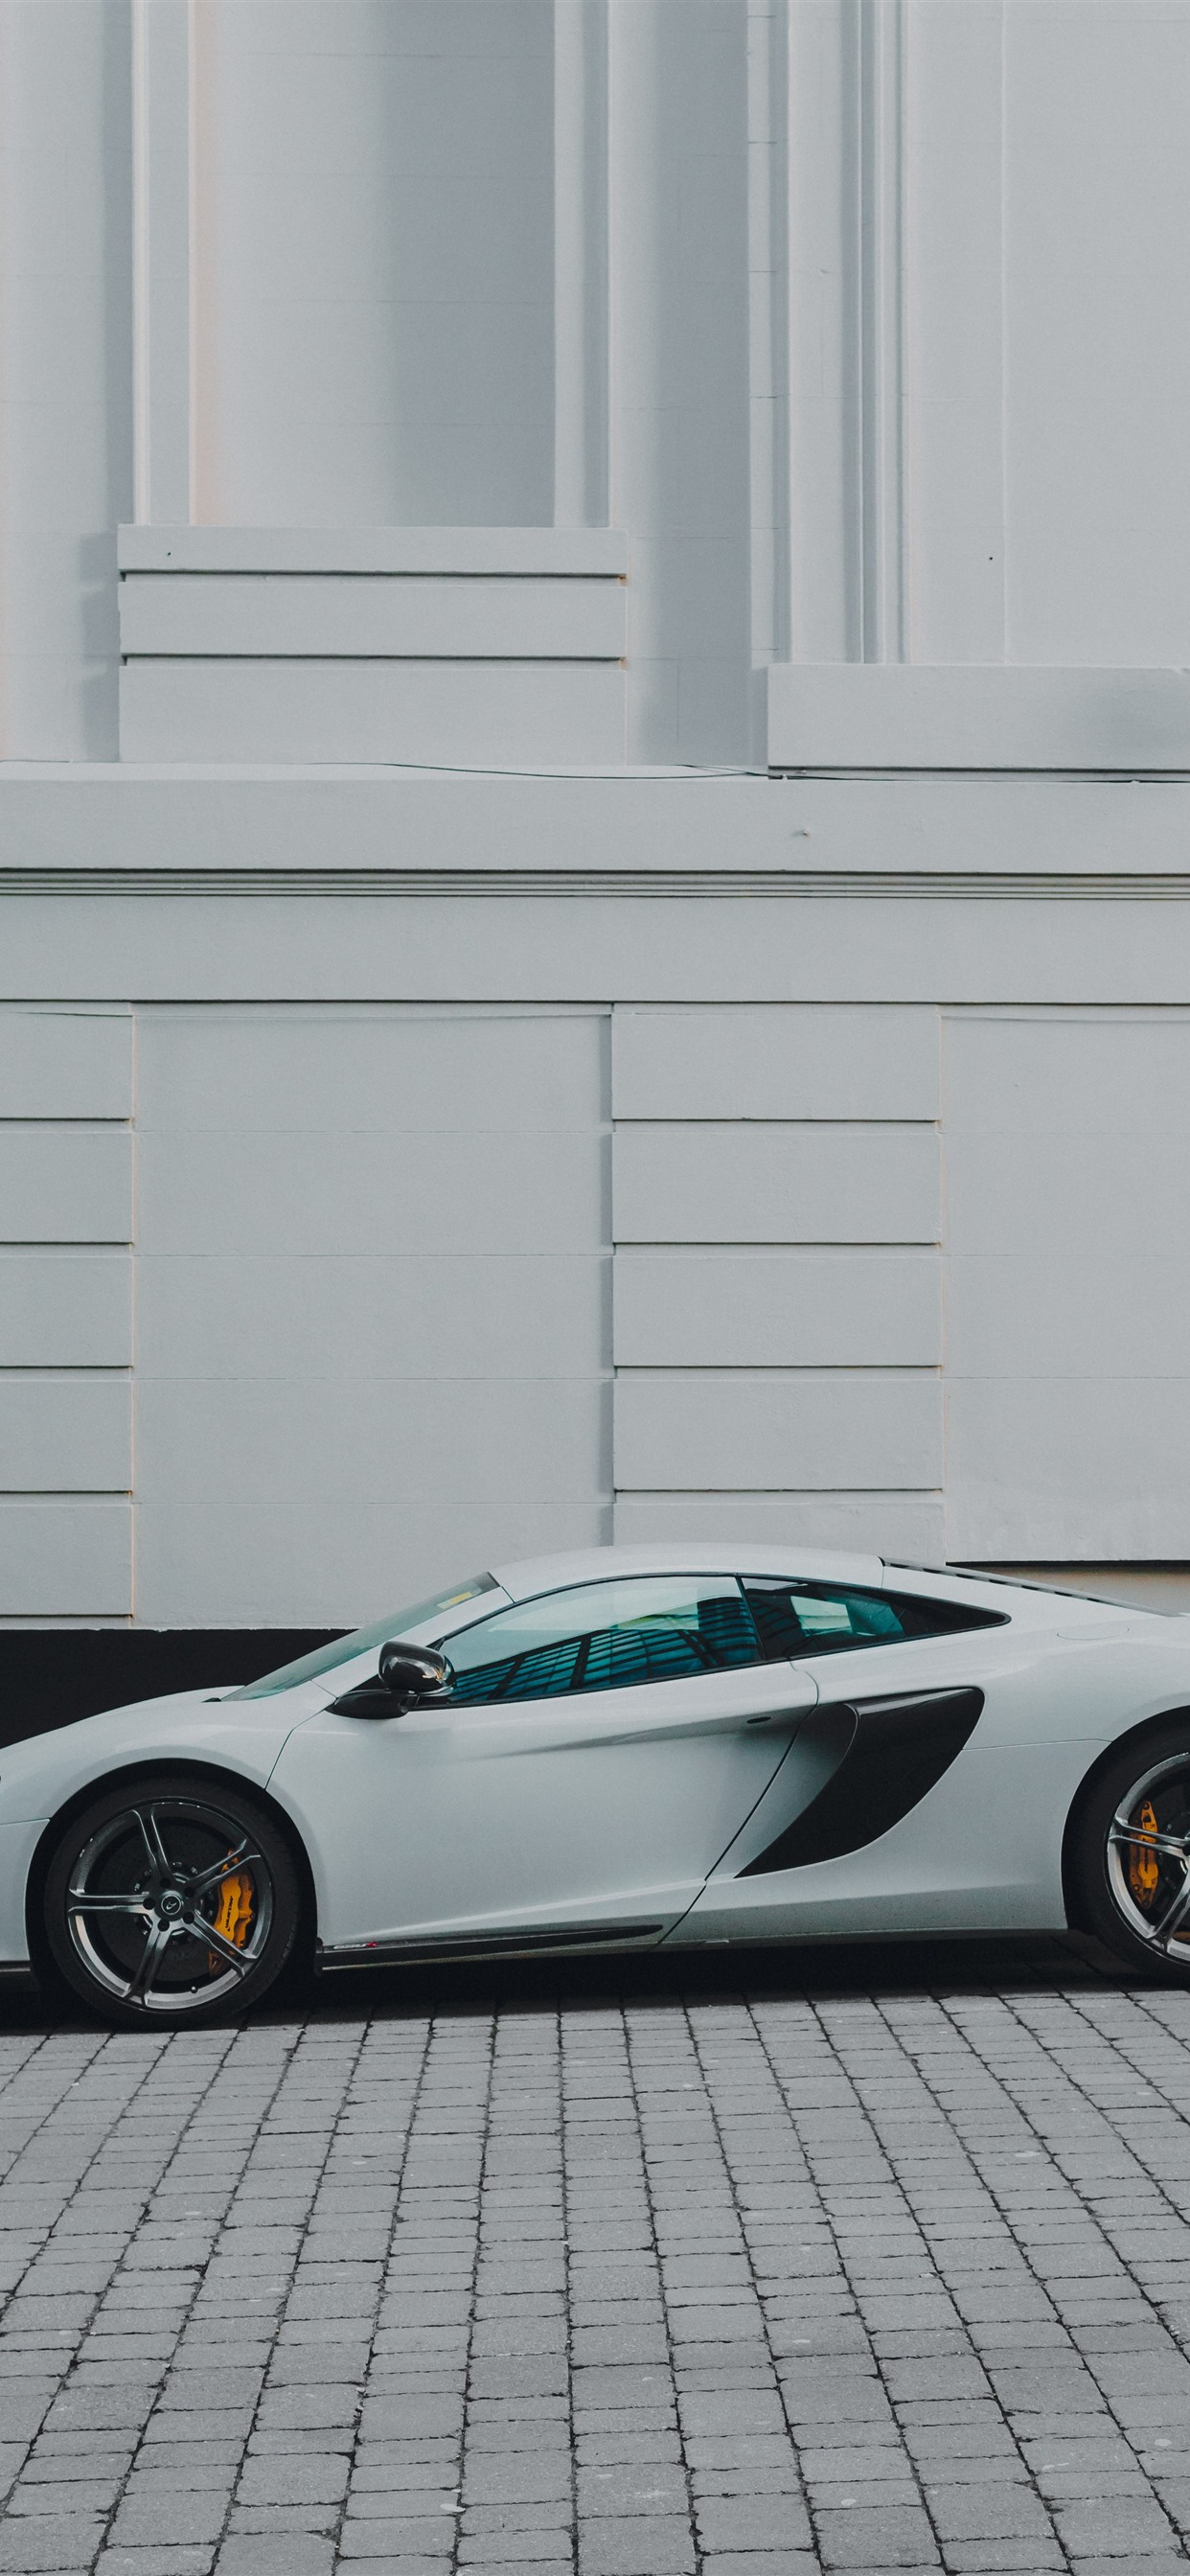 Mclaren White Supercar Side View 1242x2688 Iphone Xs Max